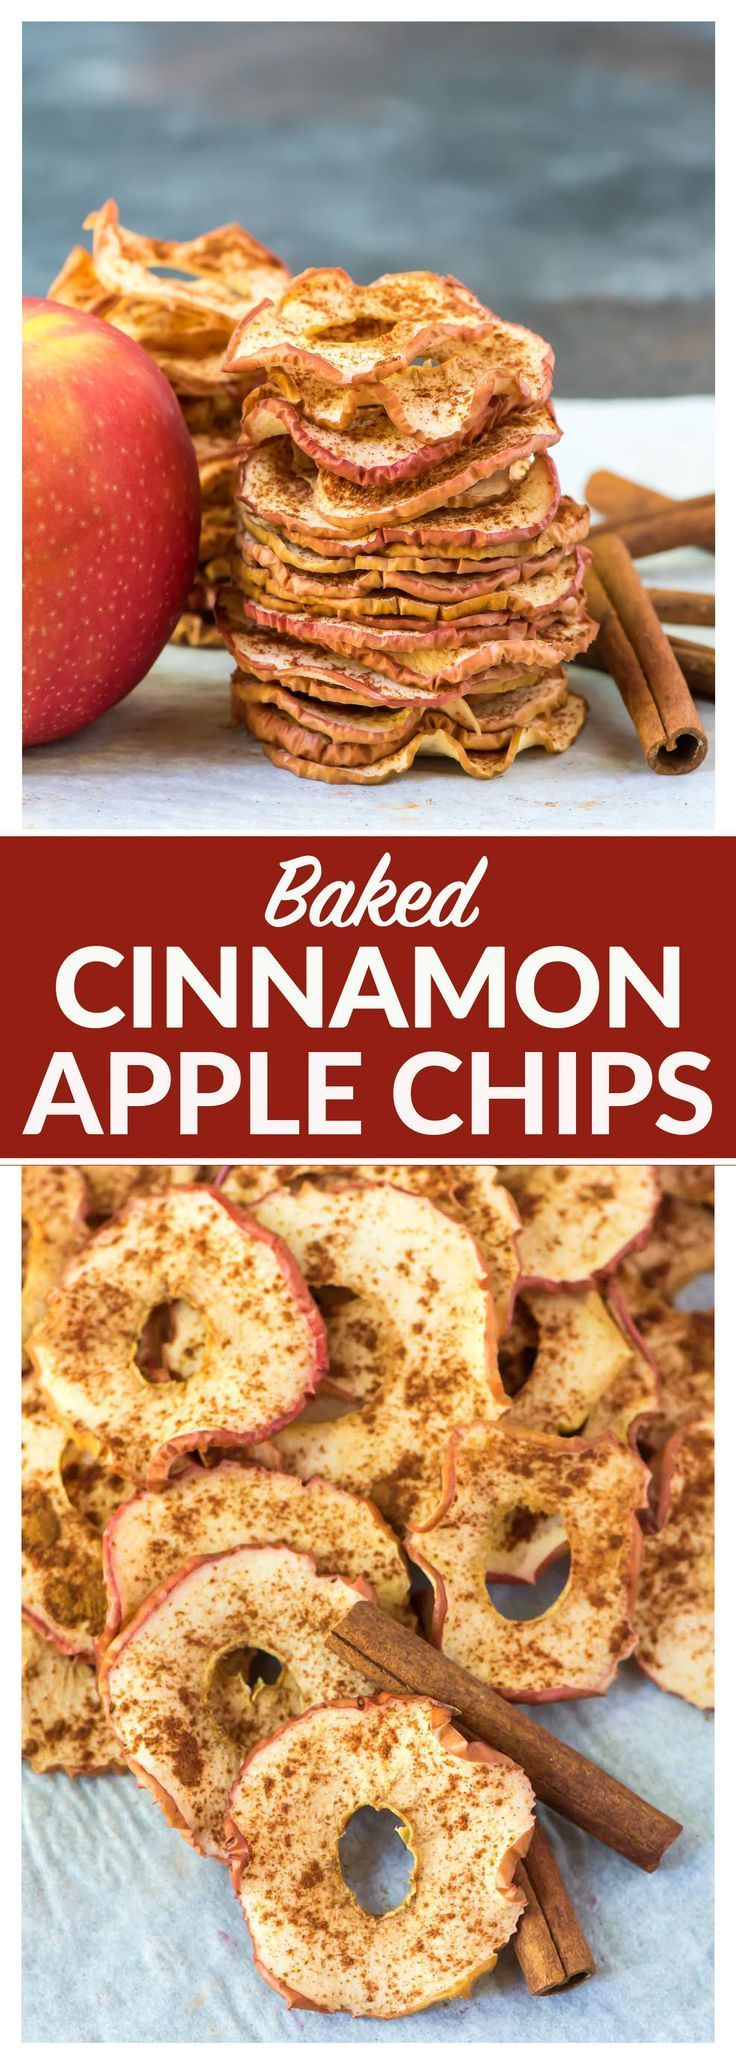 Crispy Baked Cinnamon Apple Chips. Simple oven recipe. No sugar or dehydrator needed! Easy, healthy, and so much better than store bought. Kids love them and they are great for gifts and healthy snacks. Recipe at wellplated.com